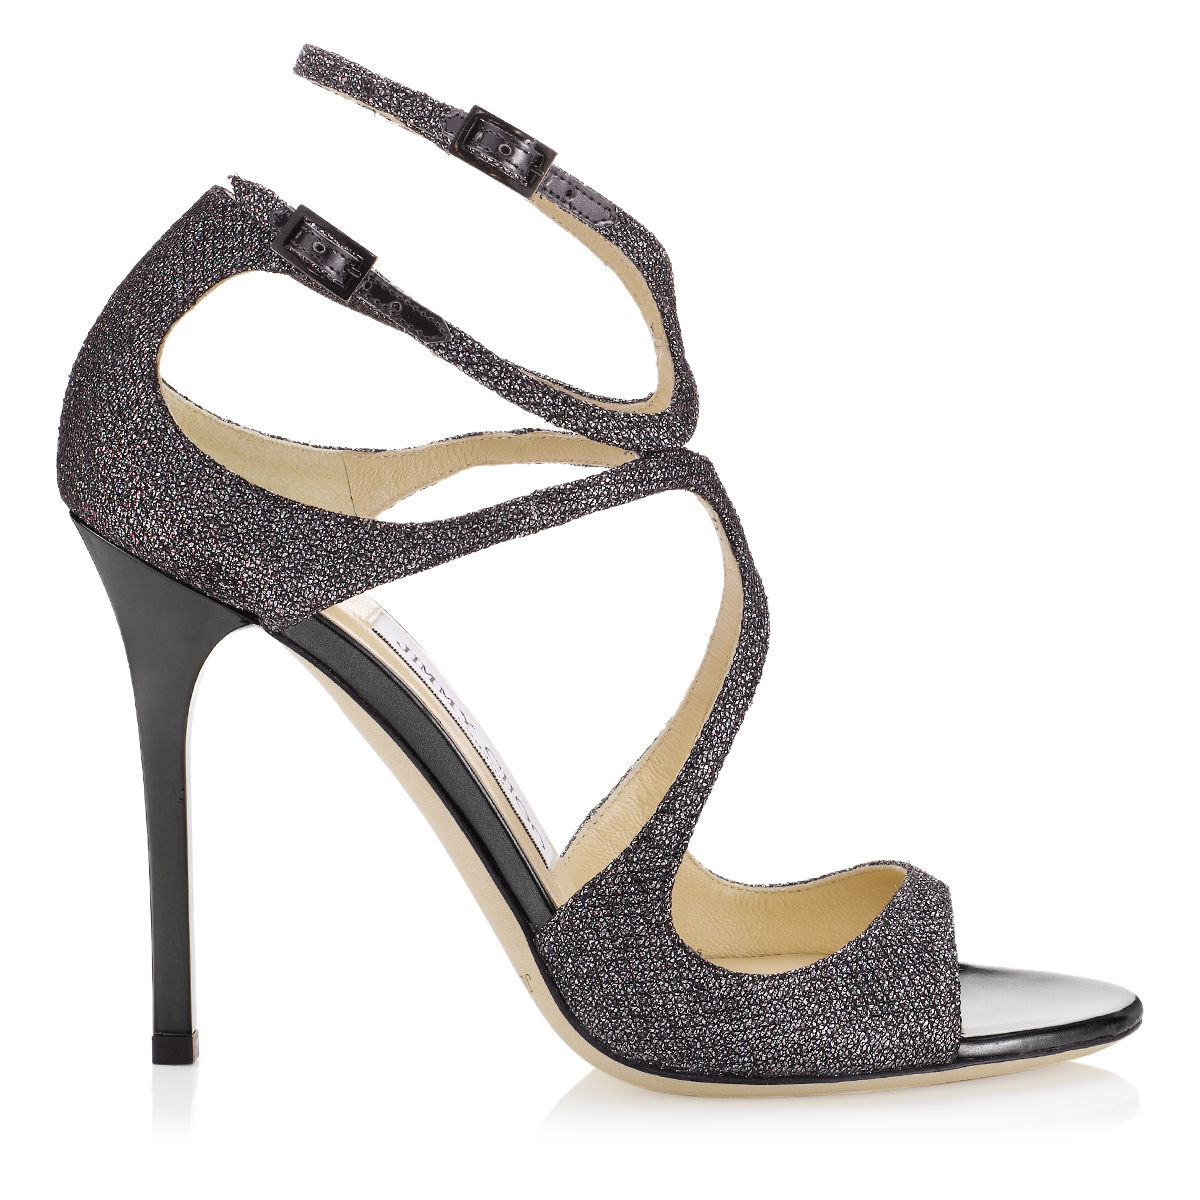 where to buy jimmy choo shoes on sale